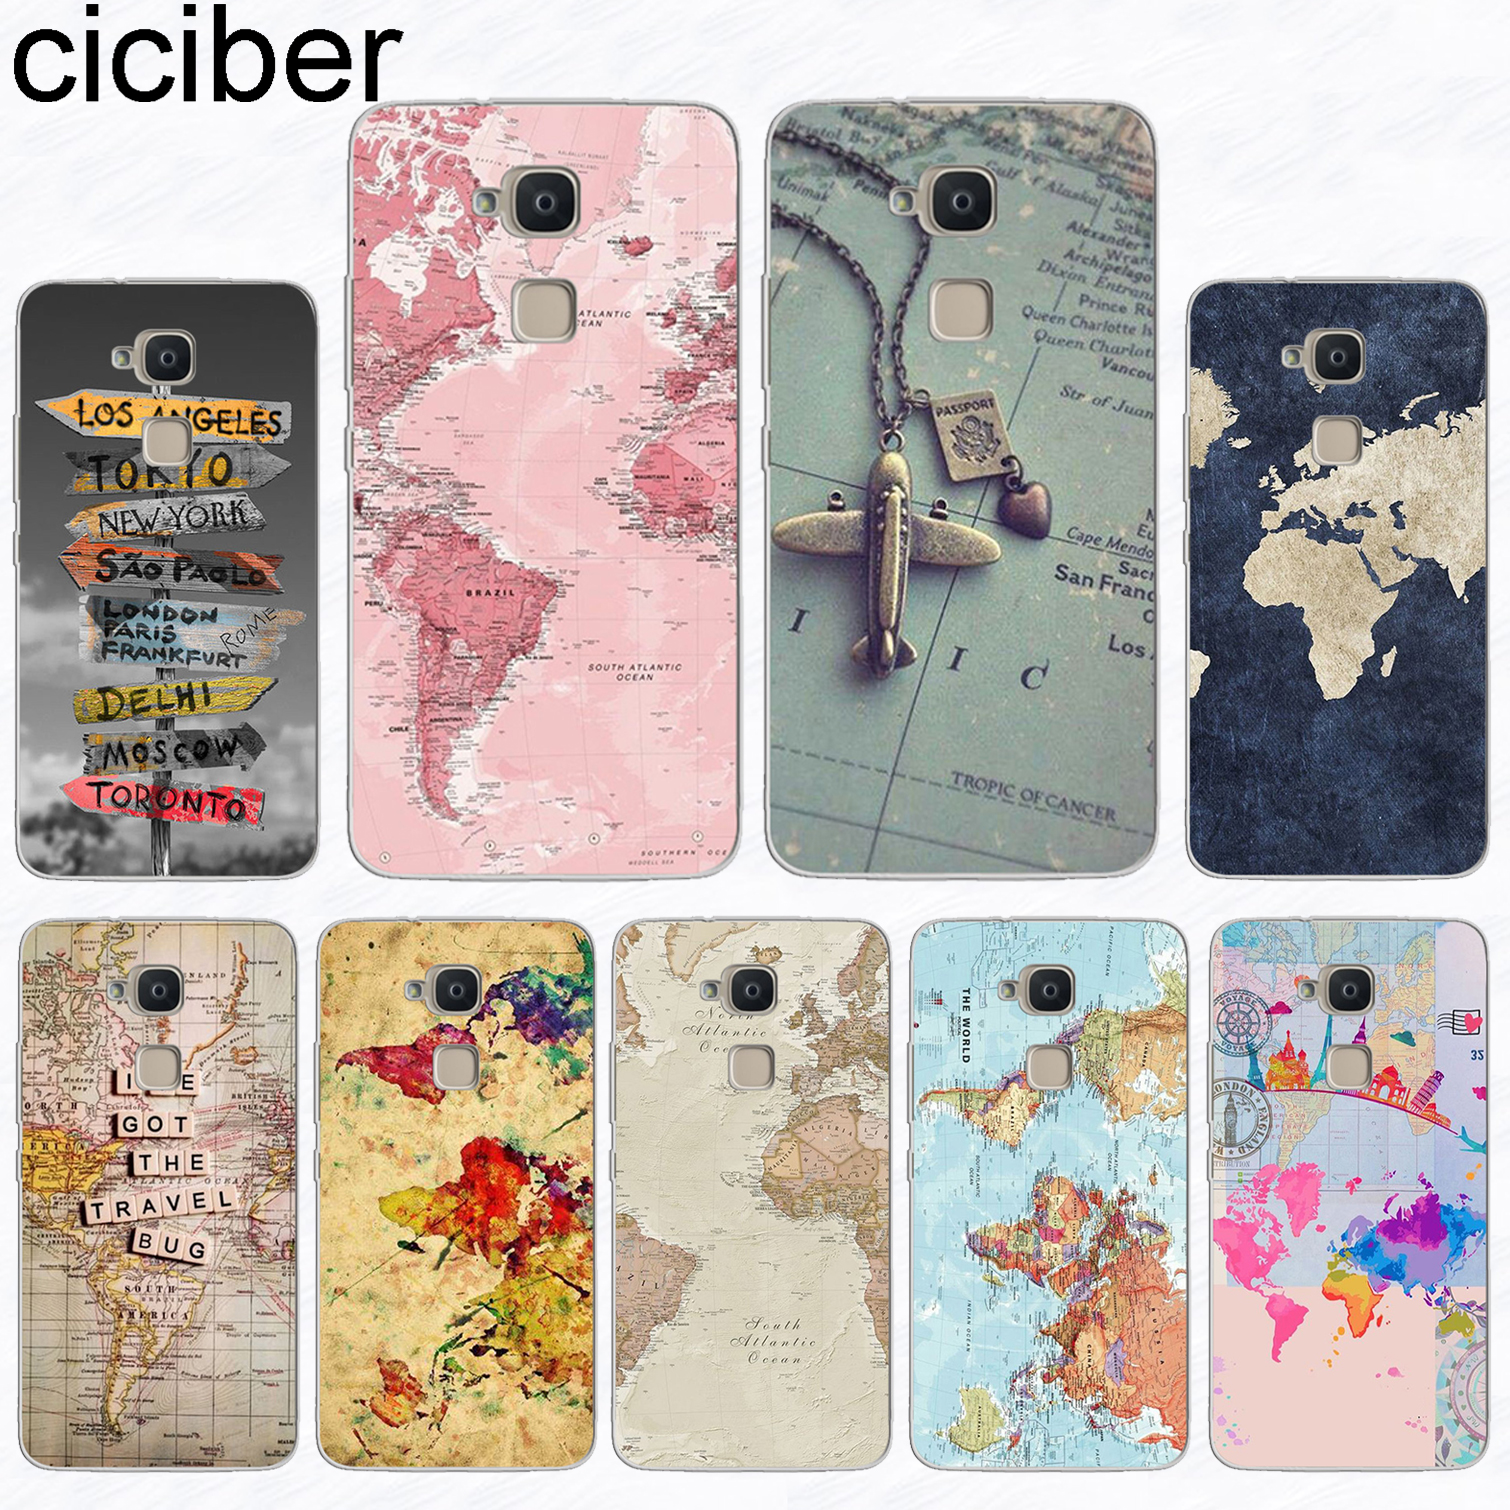 ciciber For BQ Aquaris U2 C U X5 V VS X2 X Plus Lite Pro E5 s M5 M5.5 E4.5 M4.5 Soft TPU Phone Cases World Map Travel Plans Capa